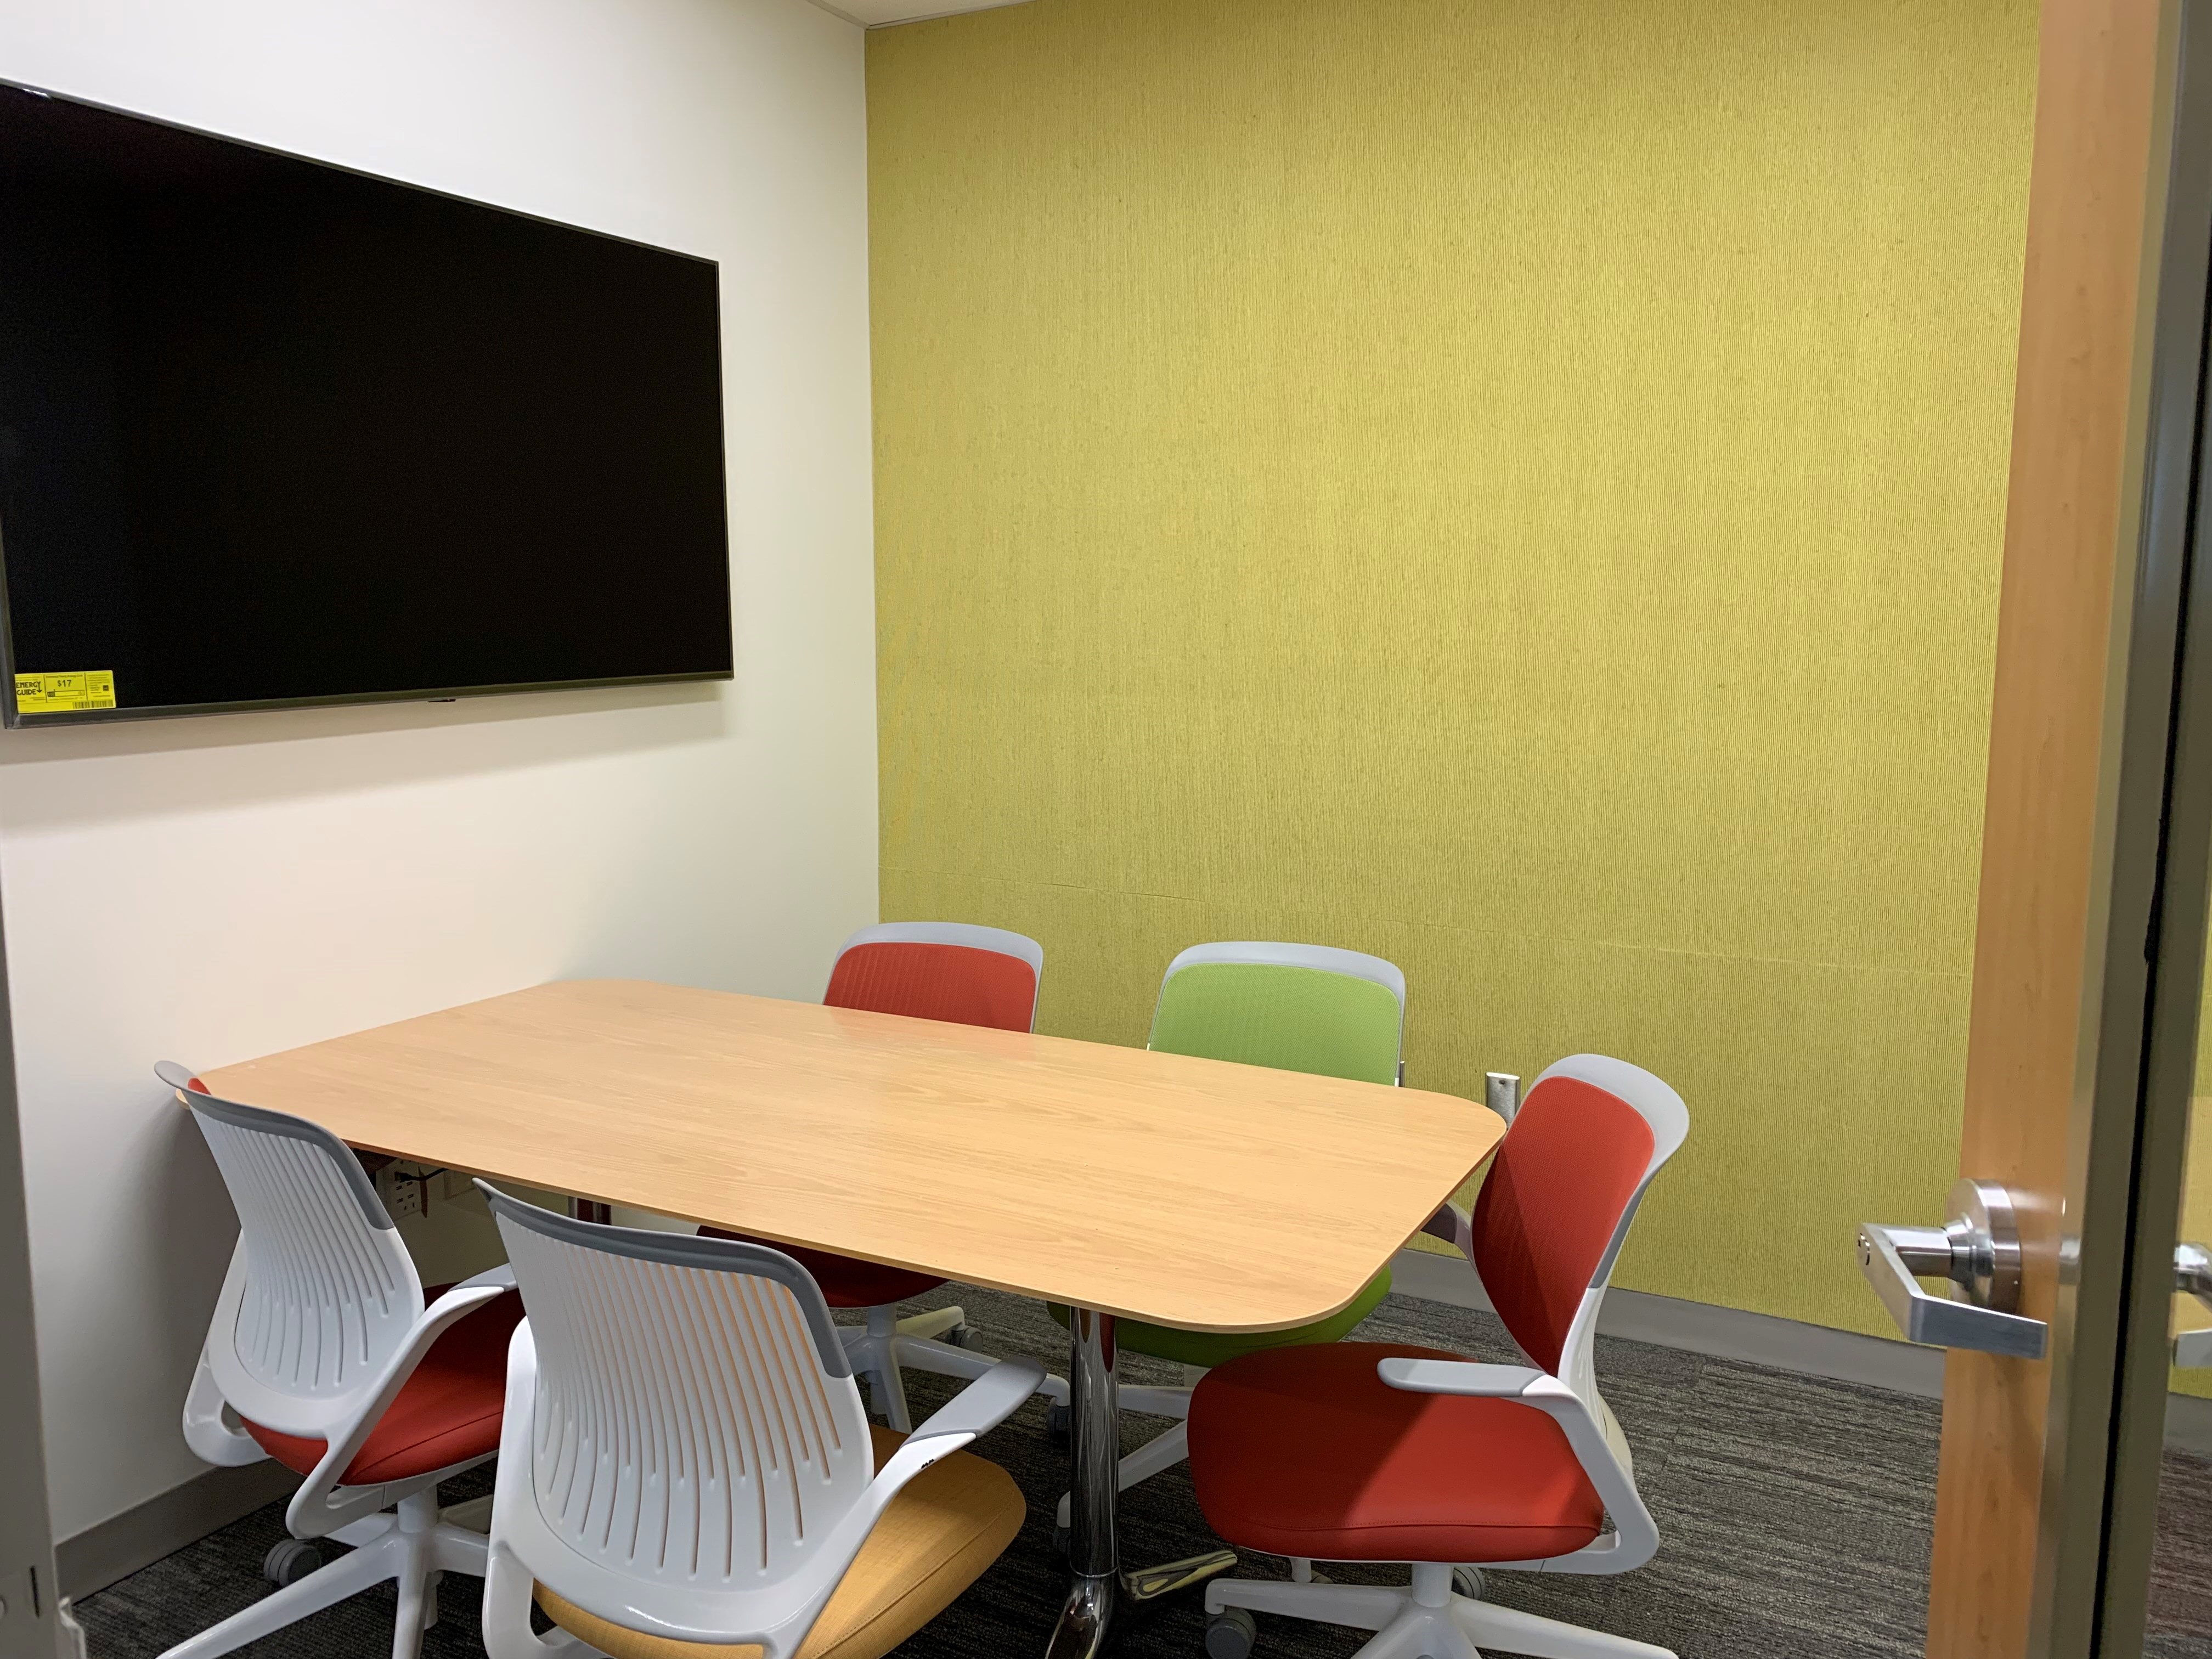 study room with yellow walls table and chairs